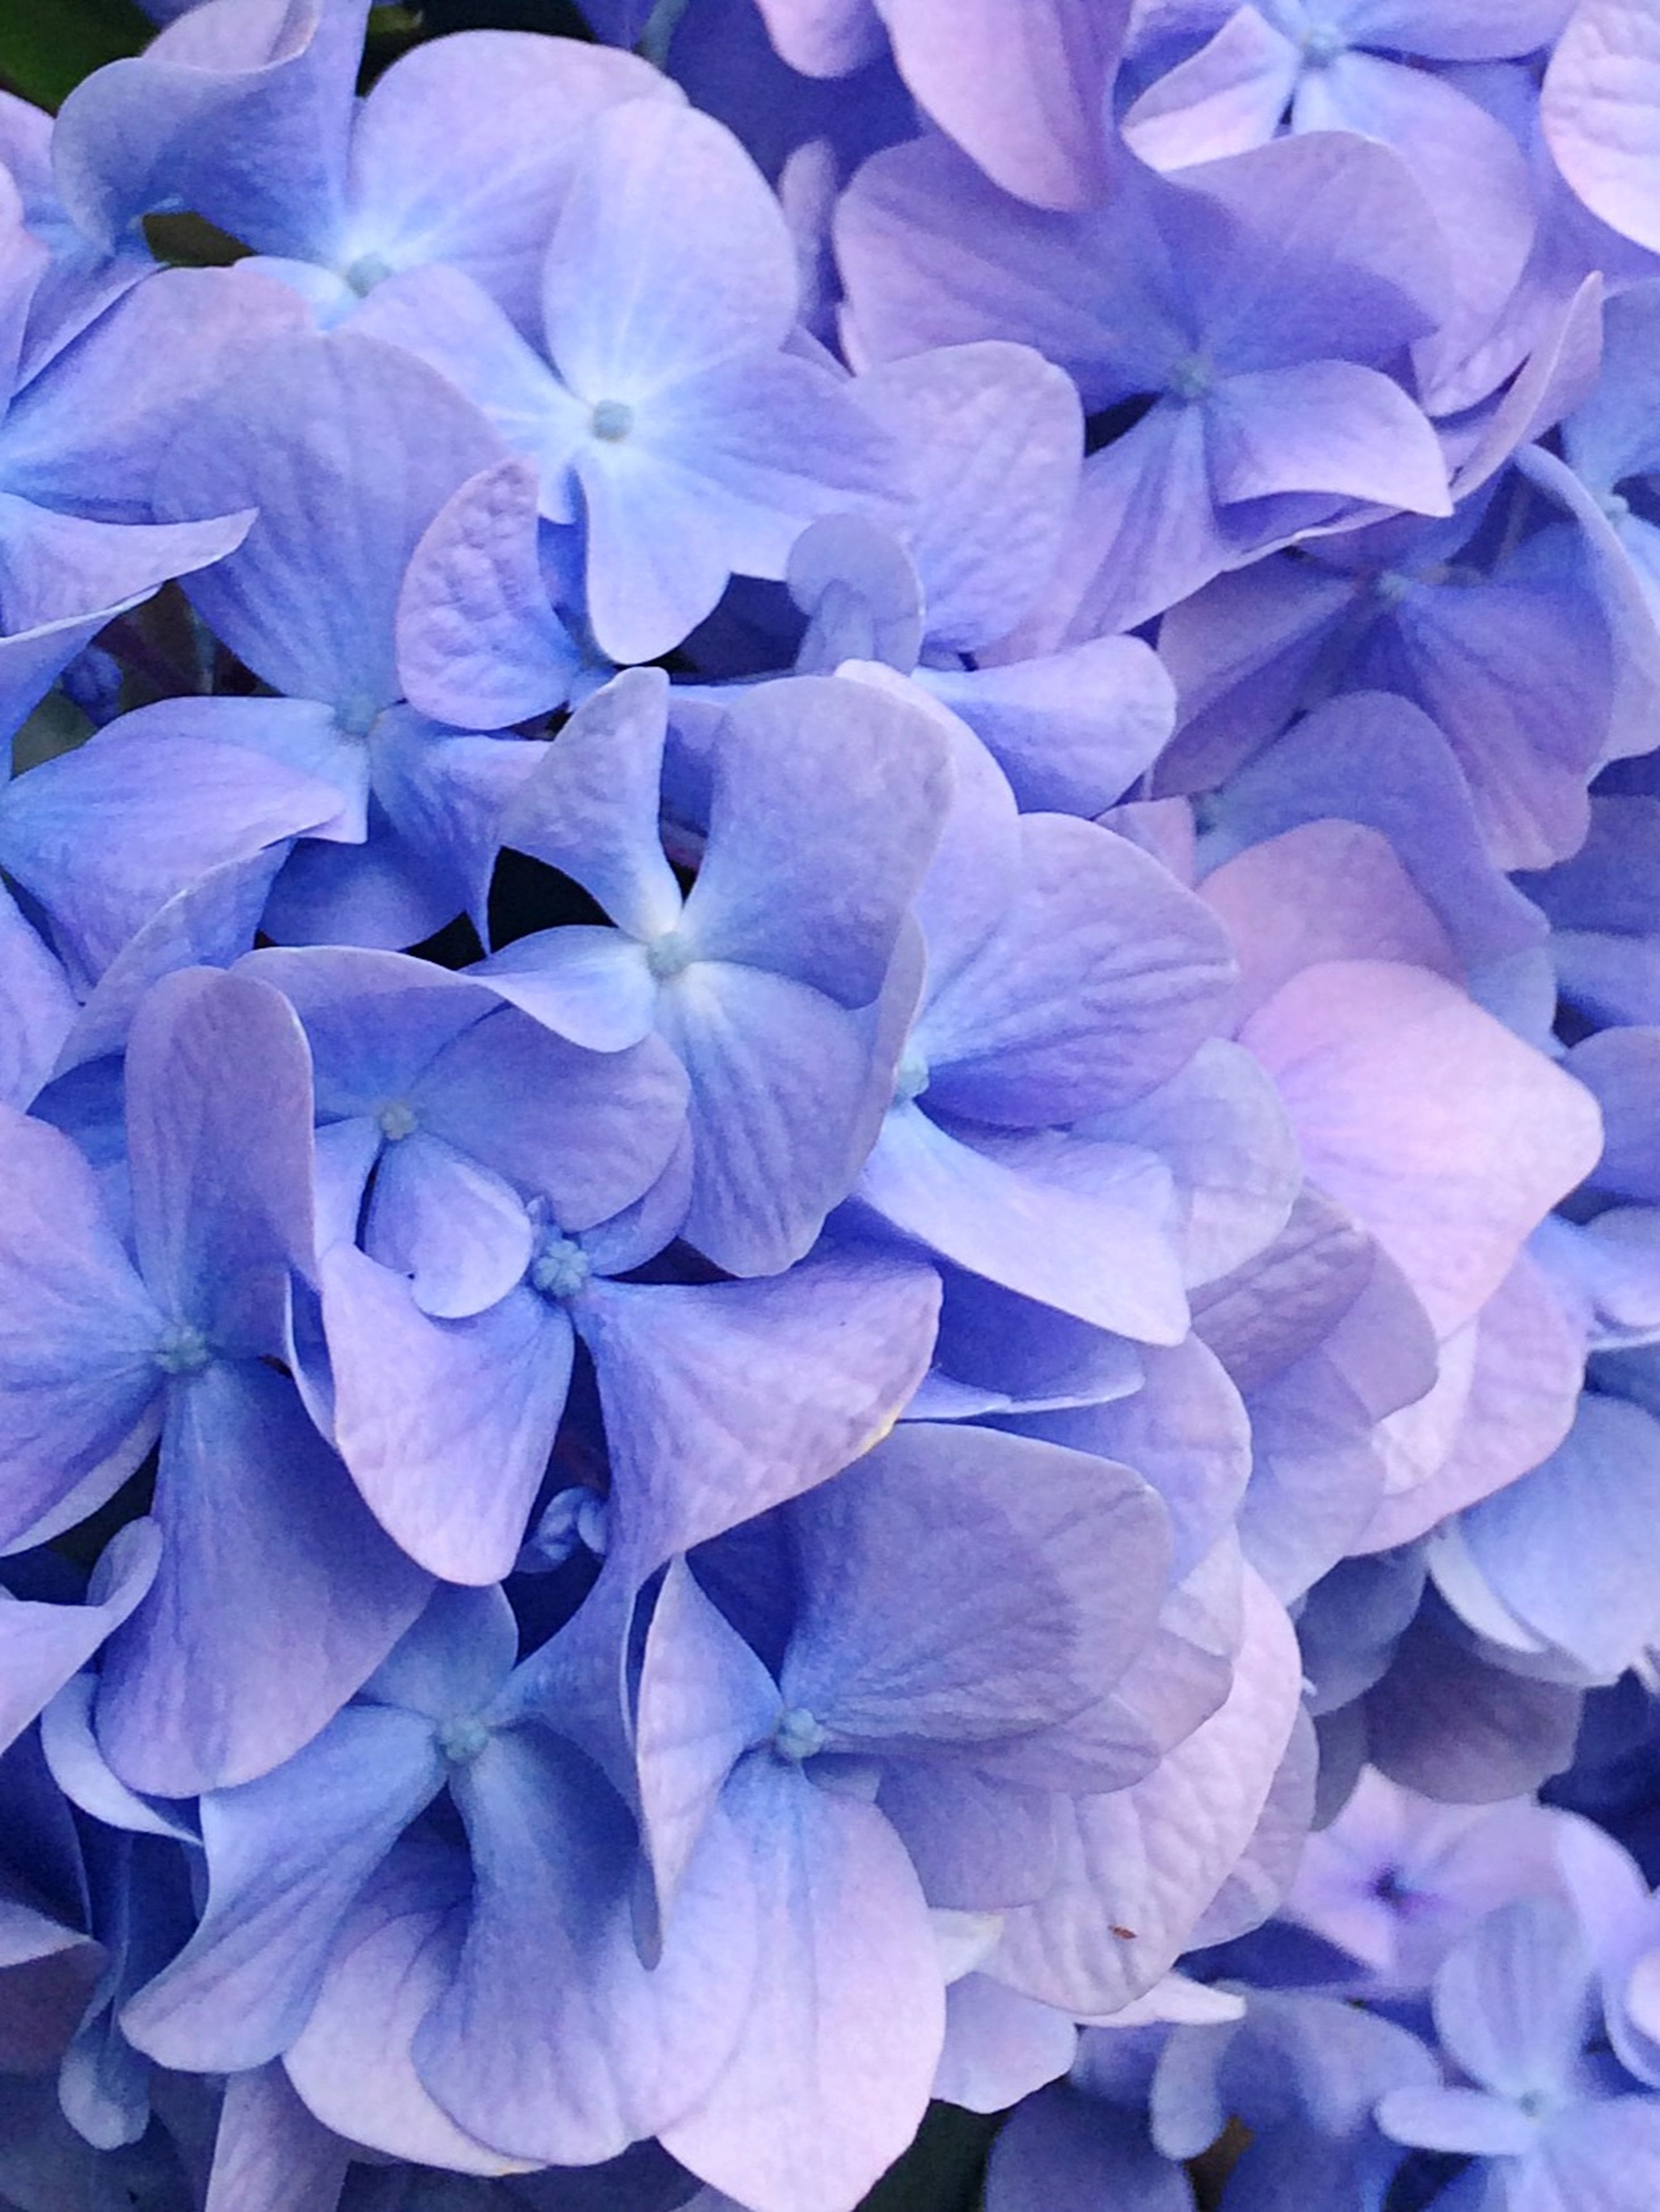 flower, petal, full frame, fragility, flower head, freshness, backgrounds, beauty in nature, purple, growth, blue, nature, close-up, blooming, plant, natural pattern, no people, in bloom, outdoors, bloom